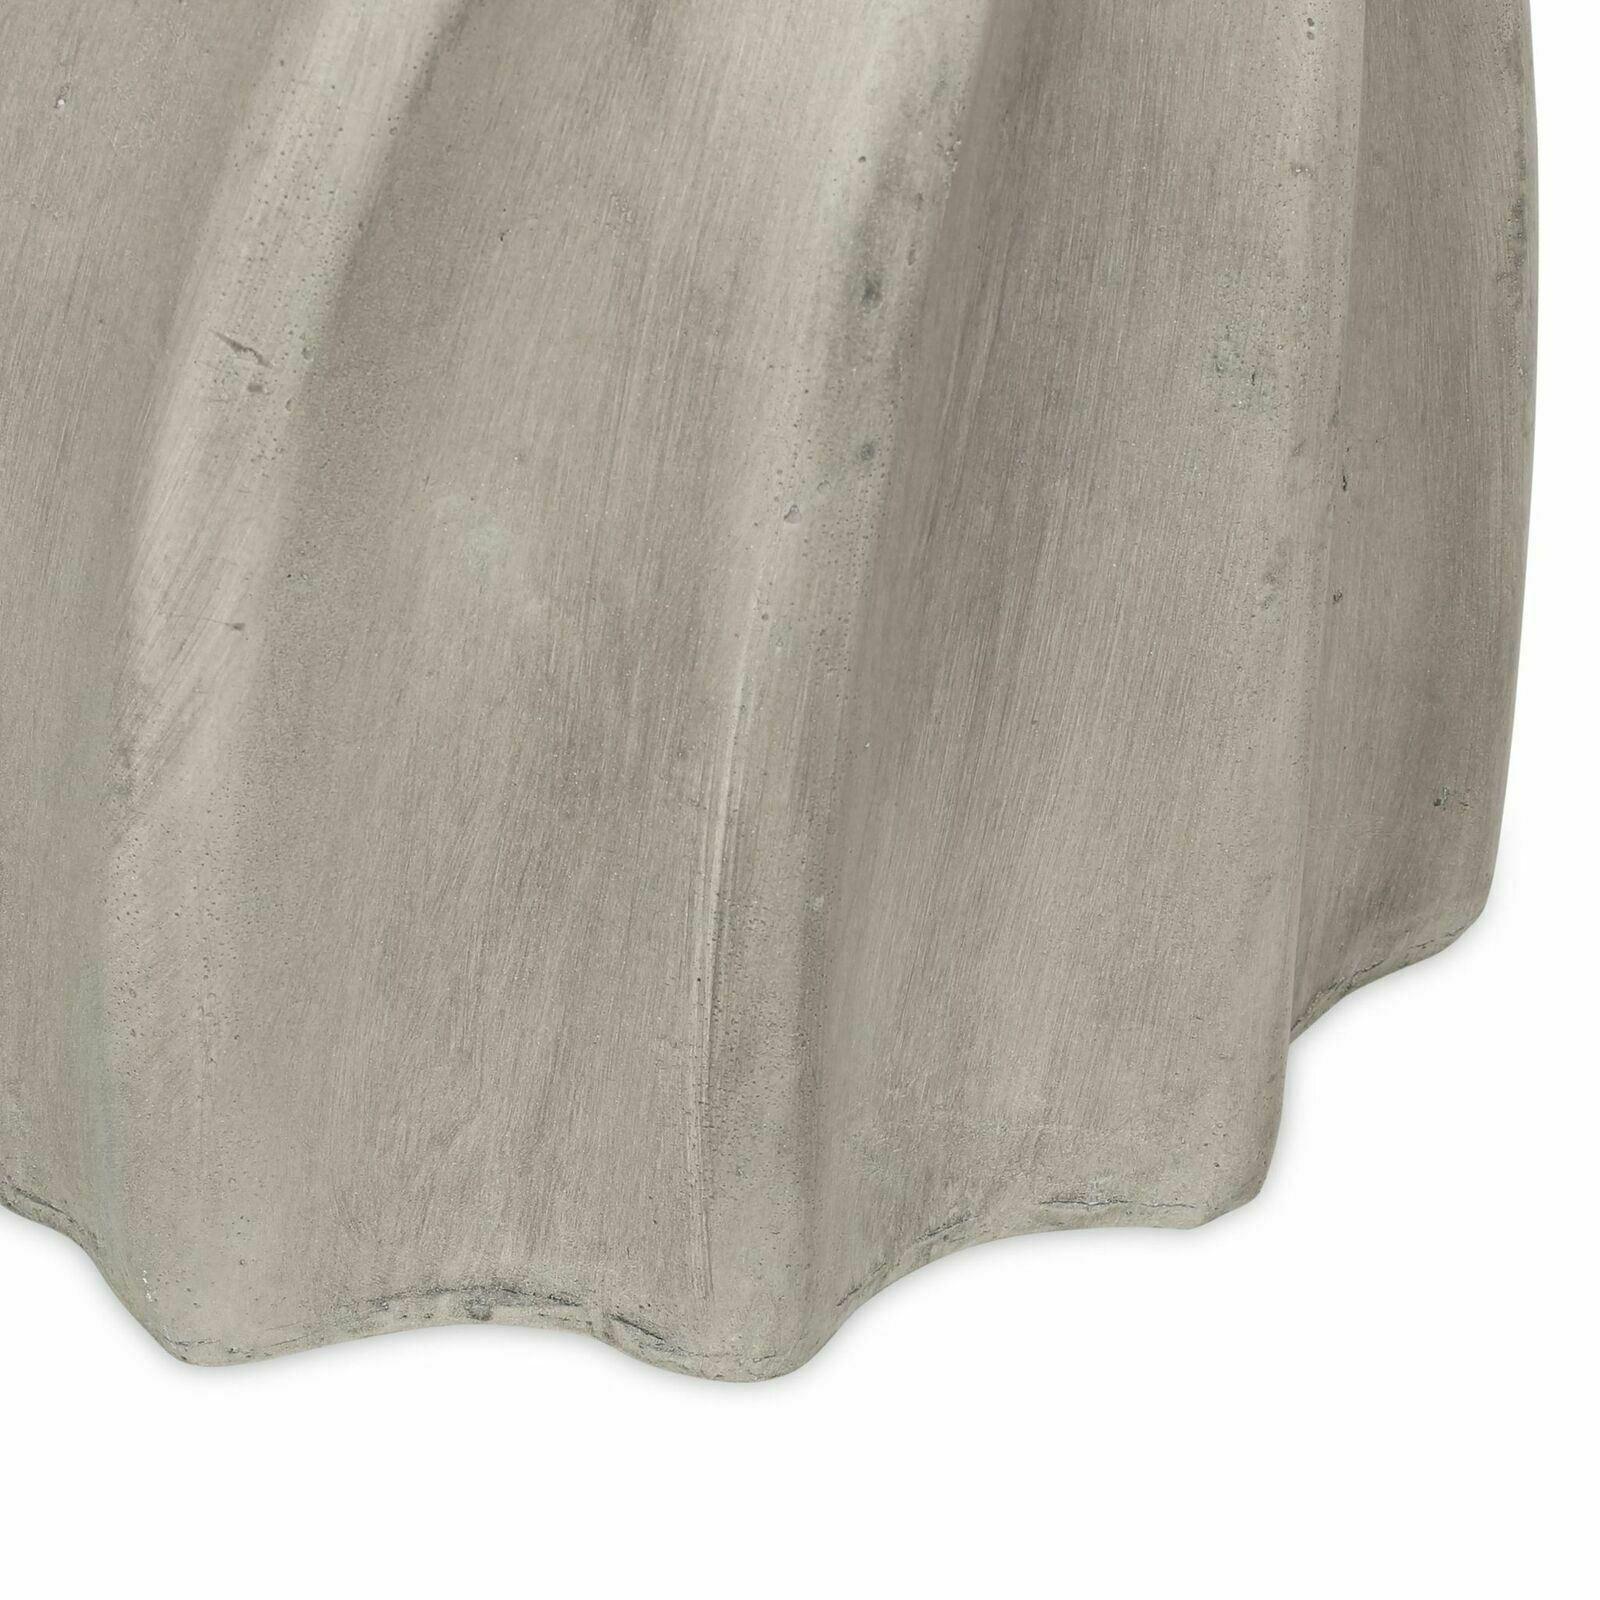 Indoor Contemporary Lightweight Concrete Accent Side Table gdfstudio